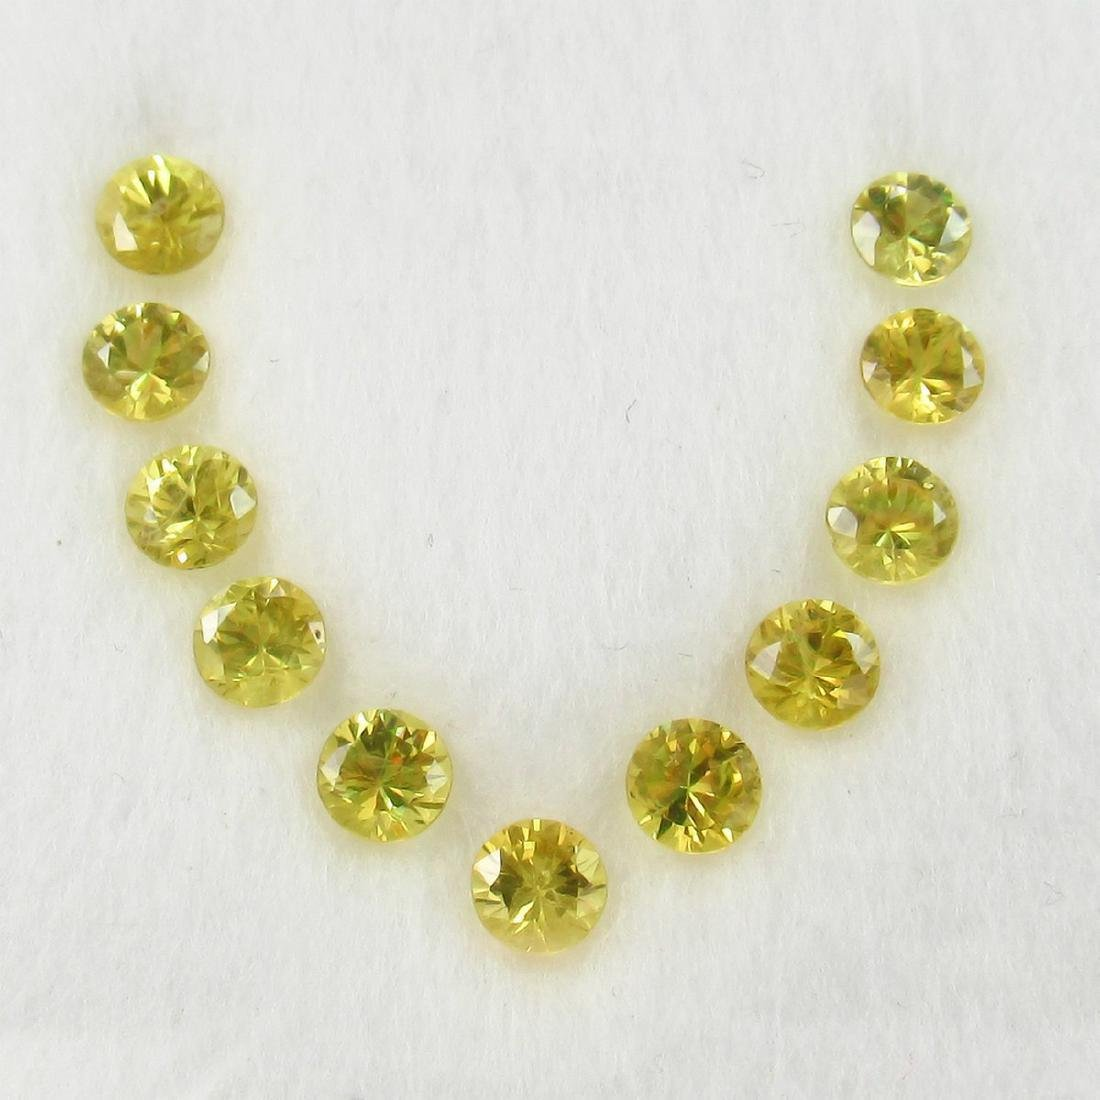 2.46 Carat 11 Loose Yellow Sapphires Necklace Set